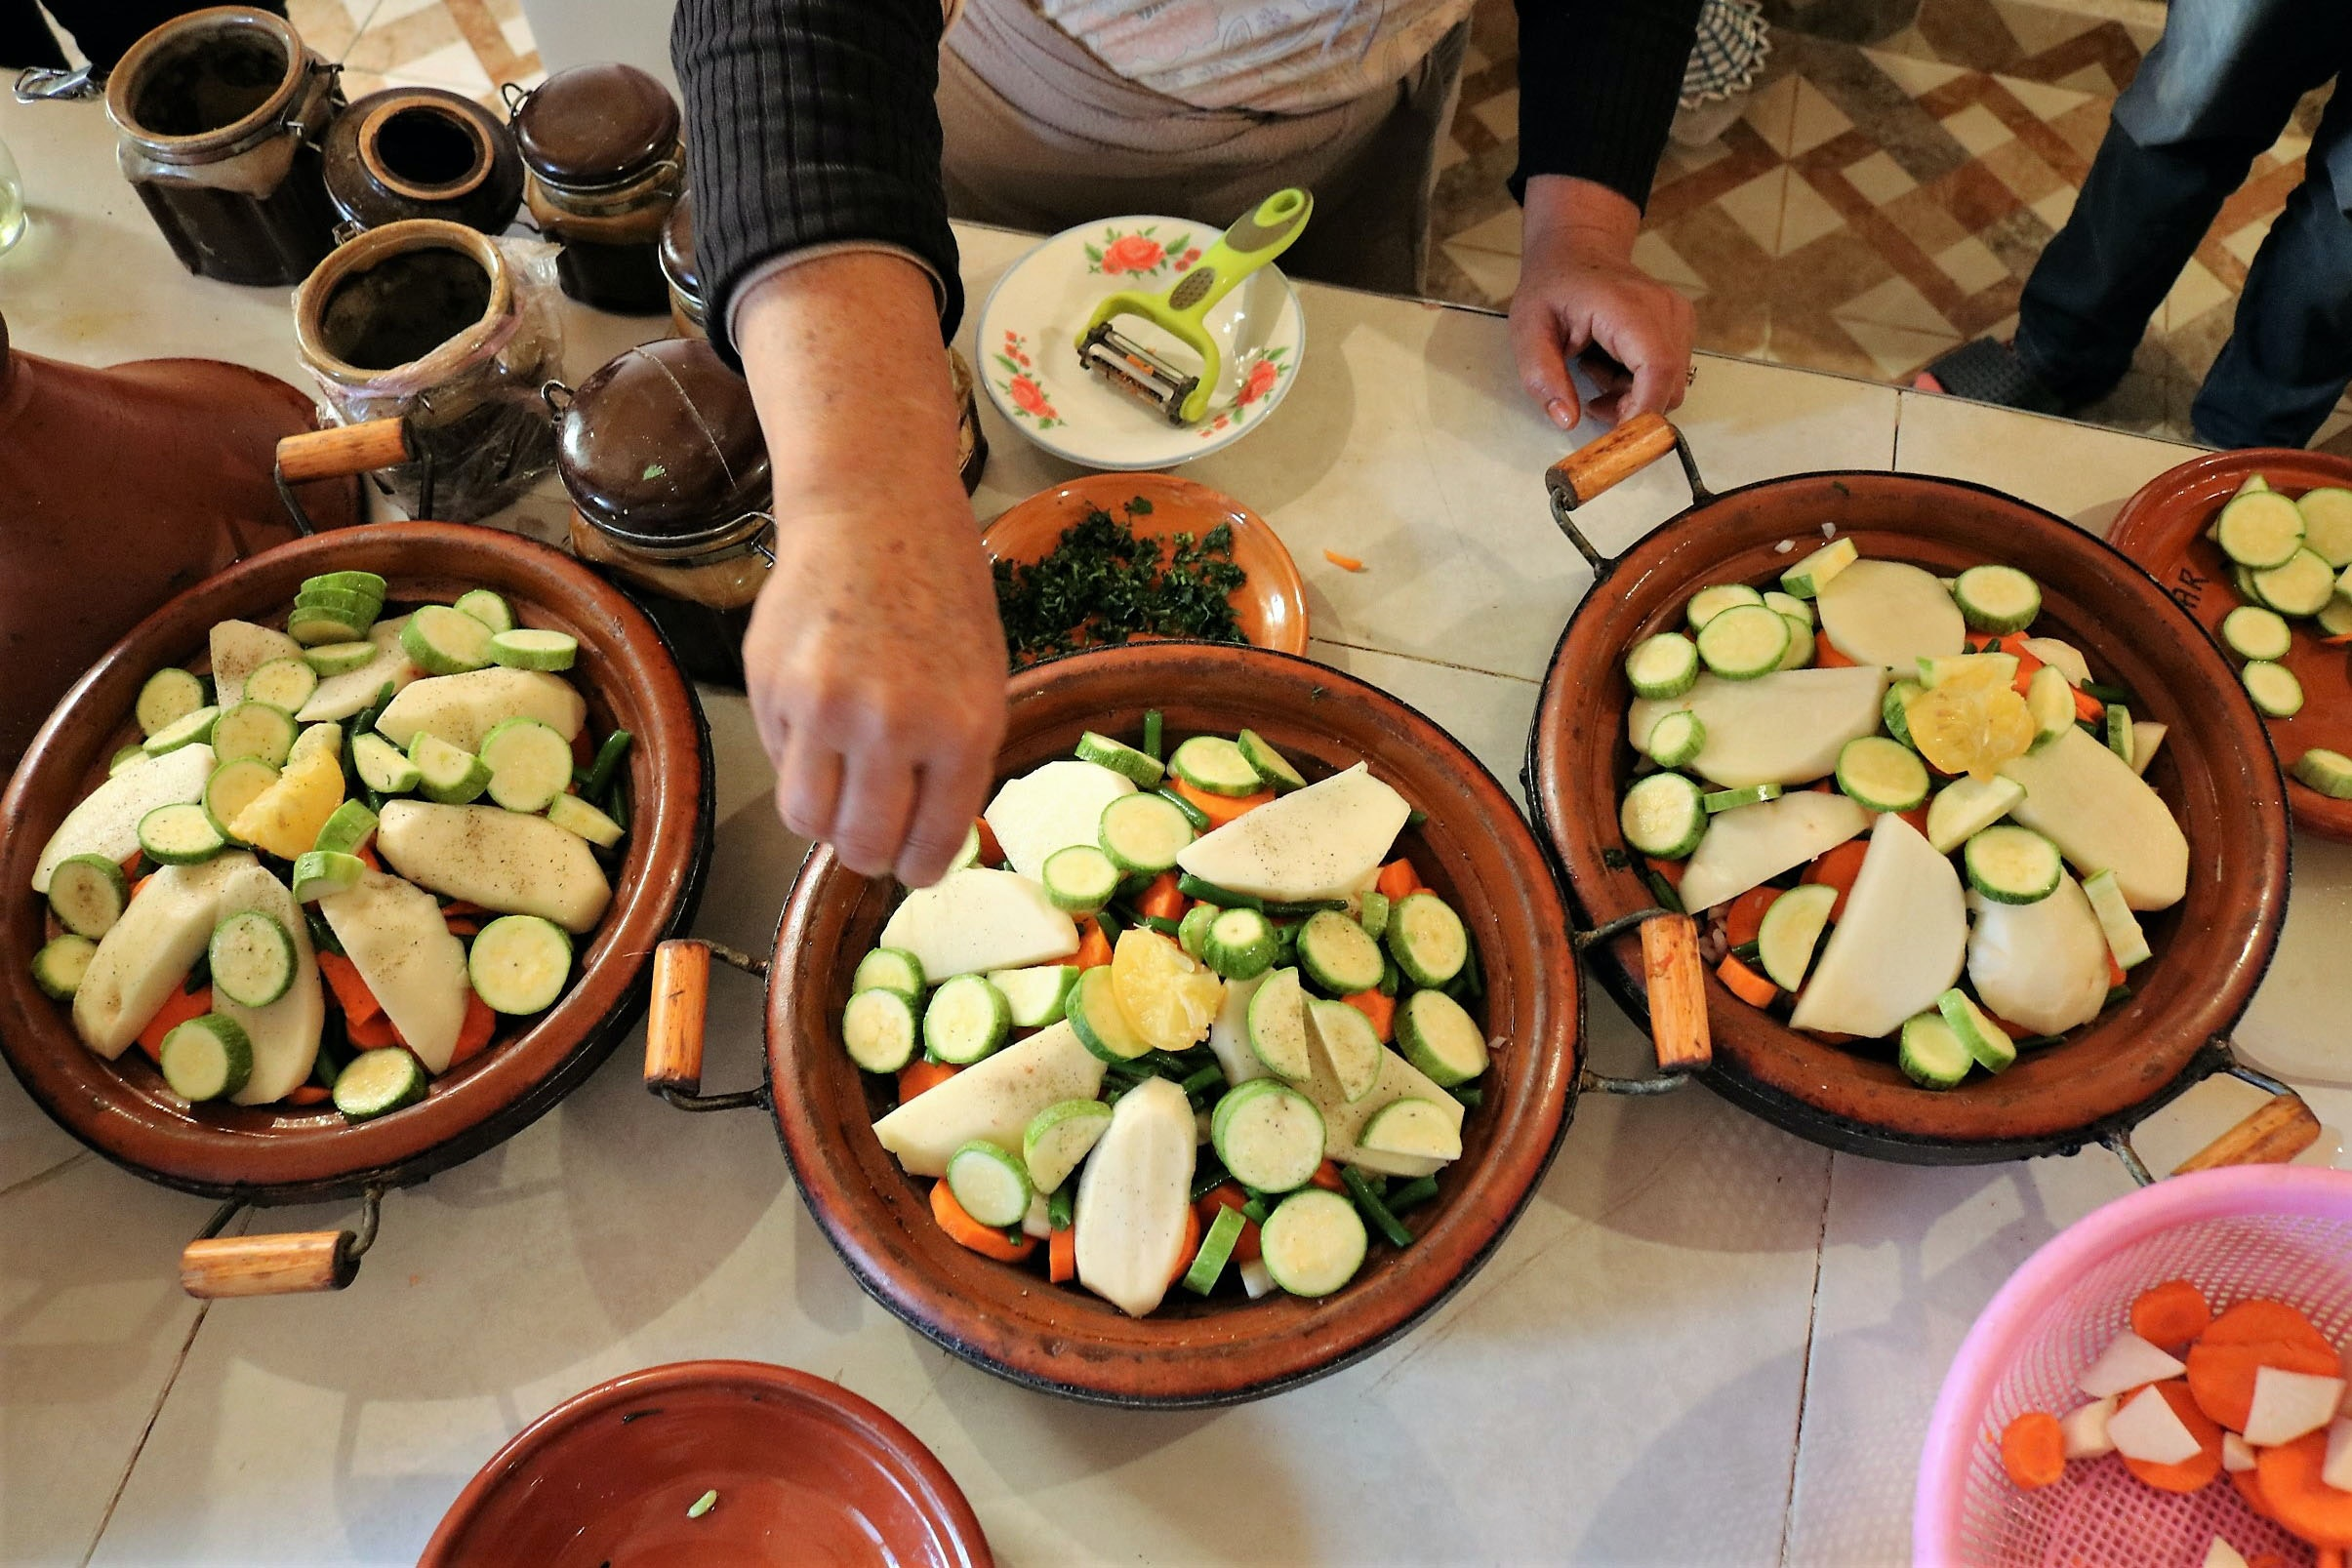 At a cooking demonstration at Riad Dar Tagine, students learned to heap vegetables onto meat inside earthenware tagines.